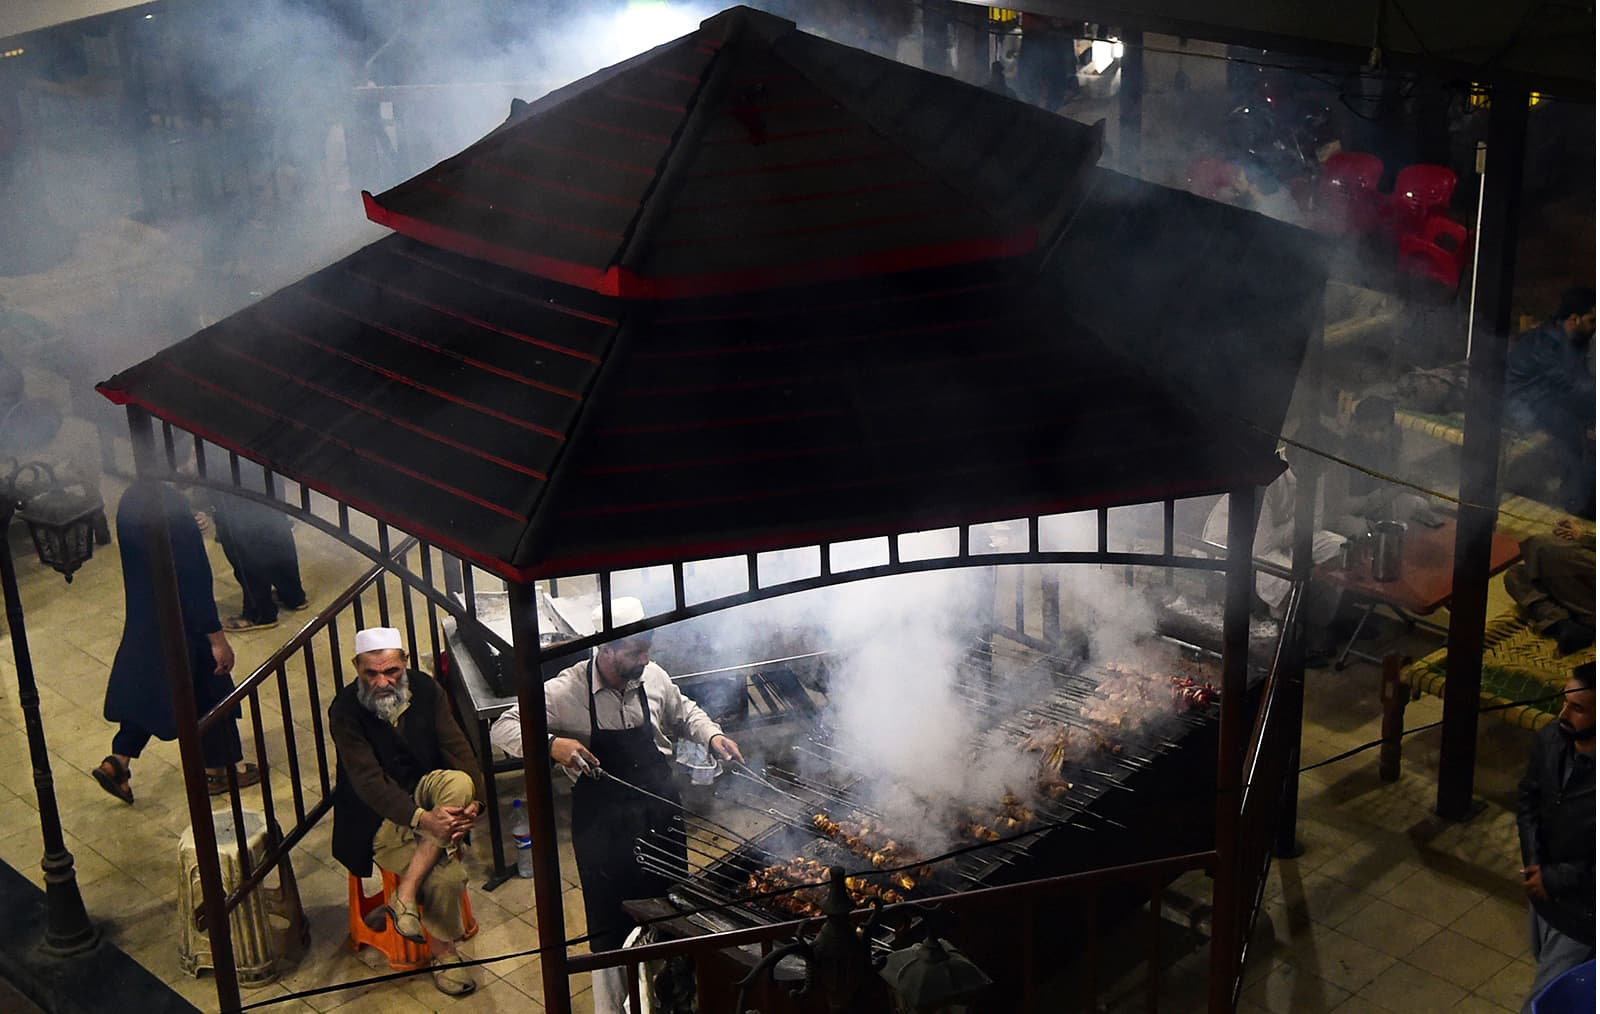 A man cooks grilled meat on a barbeque at the Charsi Tikka restaurant in Namak Mandi in Peshawar. — AFP